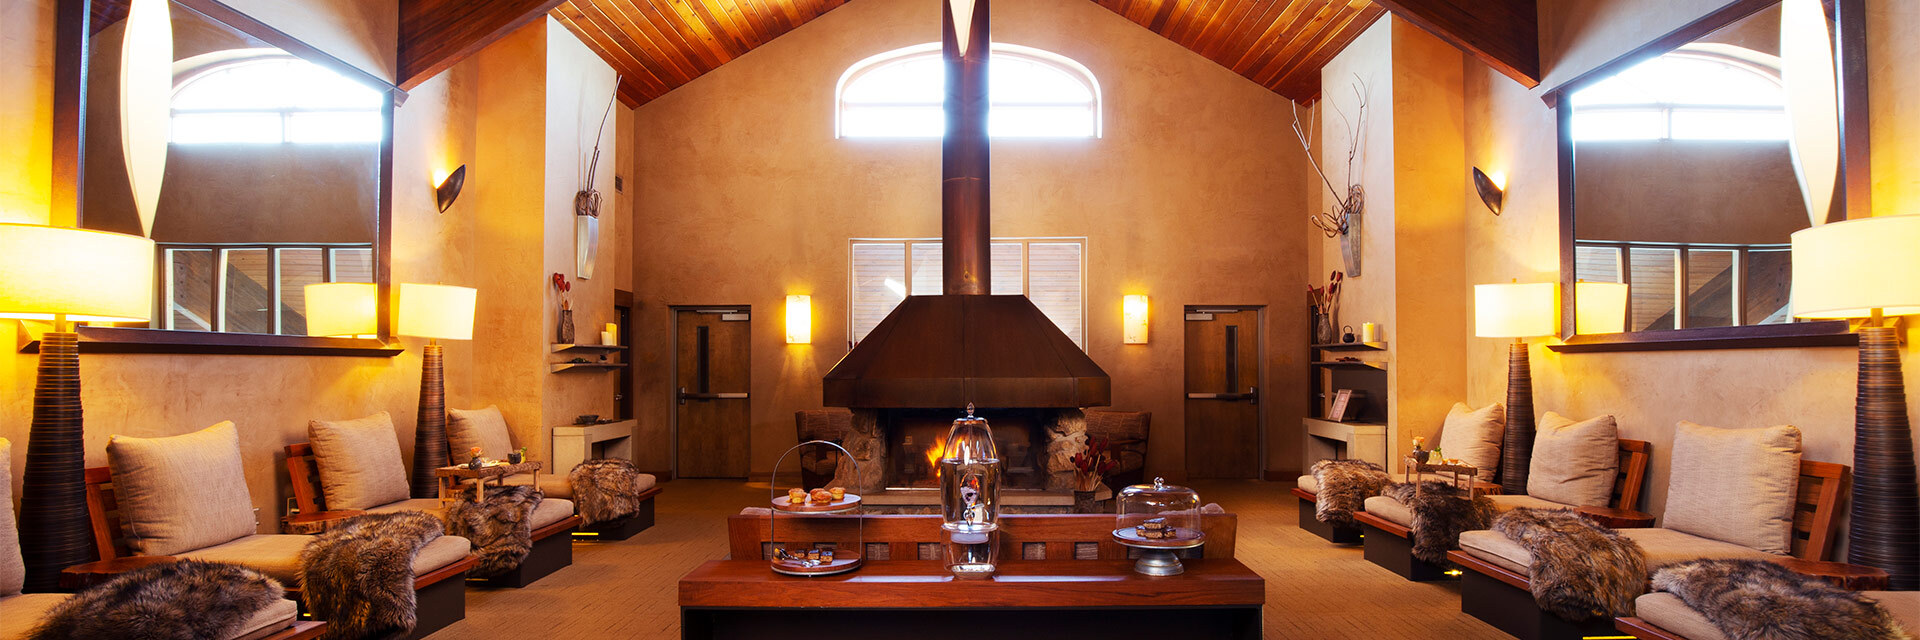 large room with seating on either side and a table in the middle and fireplace in the back, dimly lit